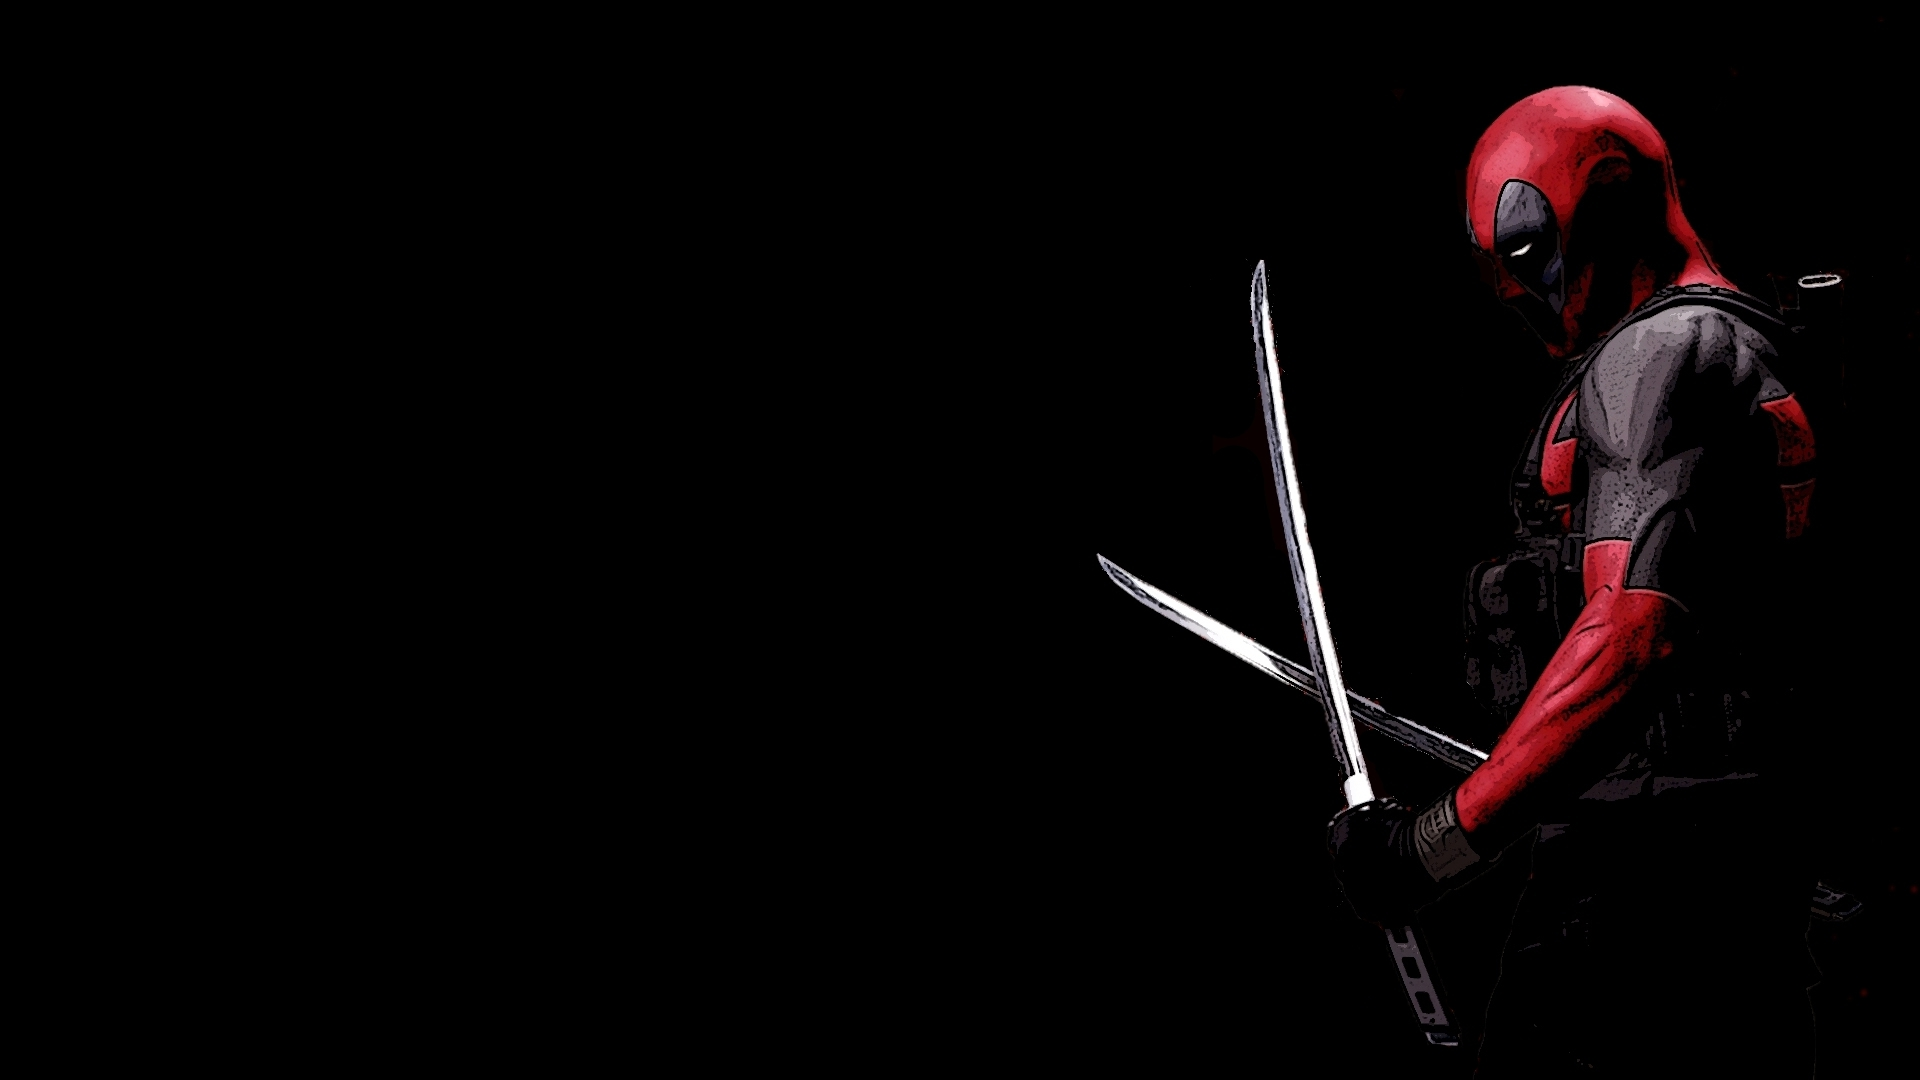 Katana Black Background Wallpapers HD Desktop and Mobile Backgrounds 1920x1080